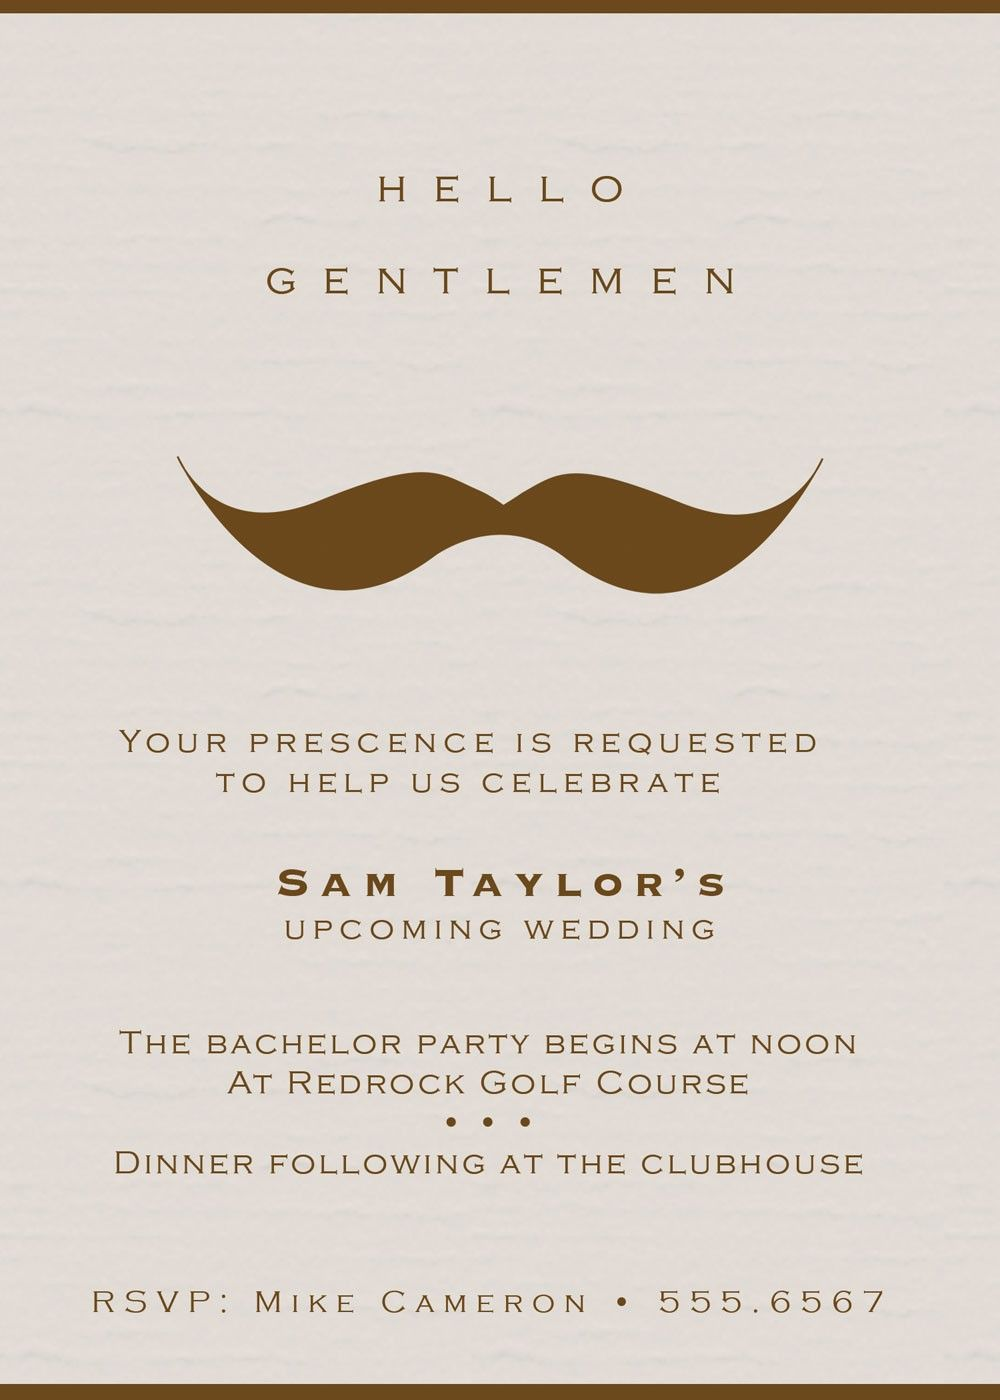 Inxase jake wants to send out invites lol brittney anderson gentlemans moustache bachelor party invitations set by rootdown monicamarmolfo Choice Image